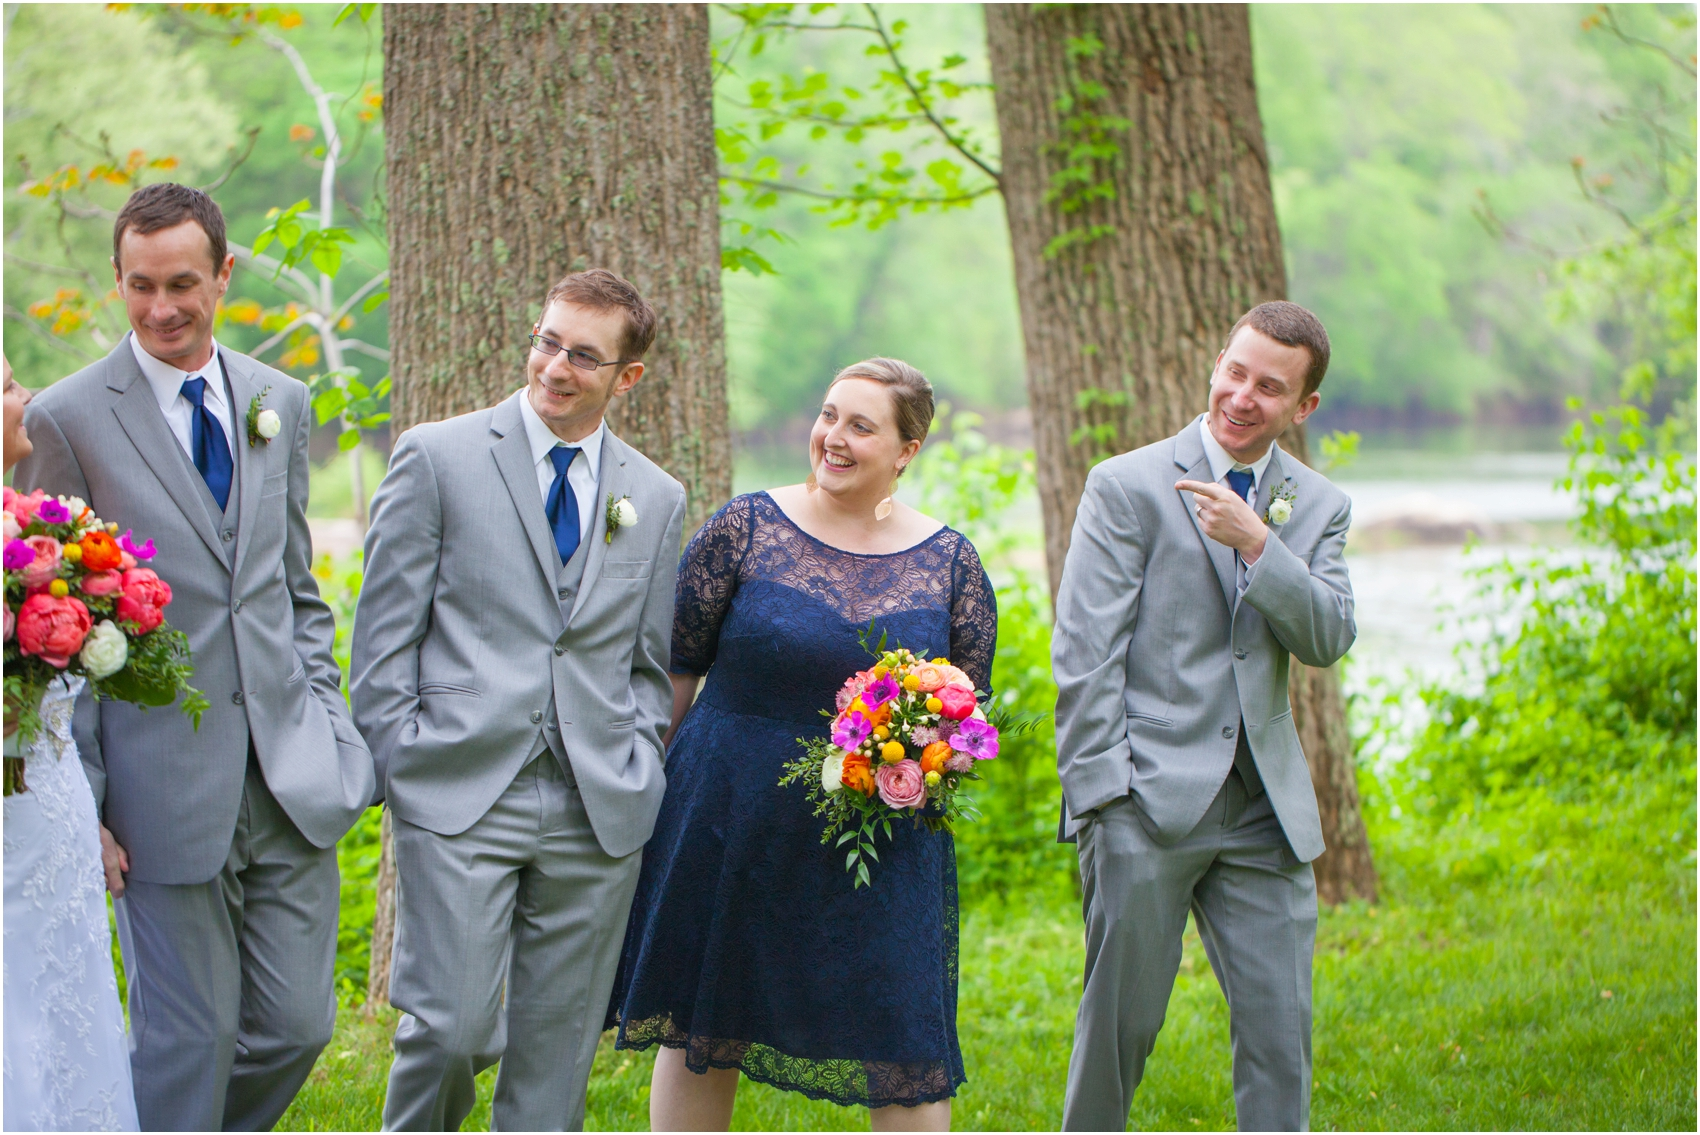 Outdoor_Central_Virginia_Clores_Bros_Summer_Wedding_Fredericksburg_VA_0070.jpg